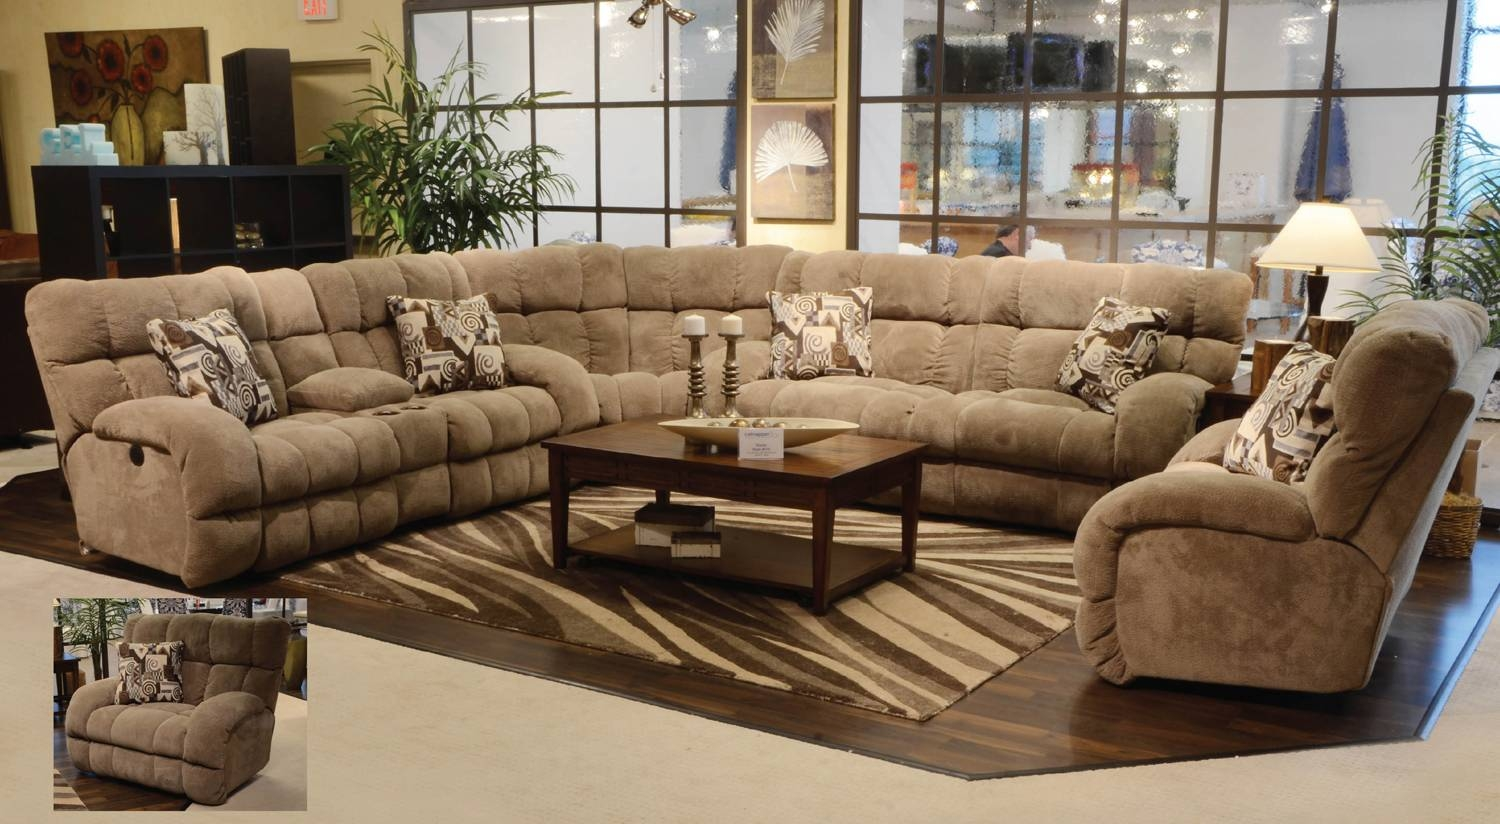 Deep Sectional Sofa. Modern Sectional Sofa Island Of Tino Mariani for Extra Wide Sectional Sofas (Image 14 of 30)